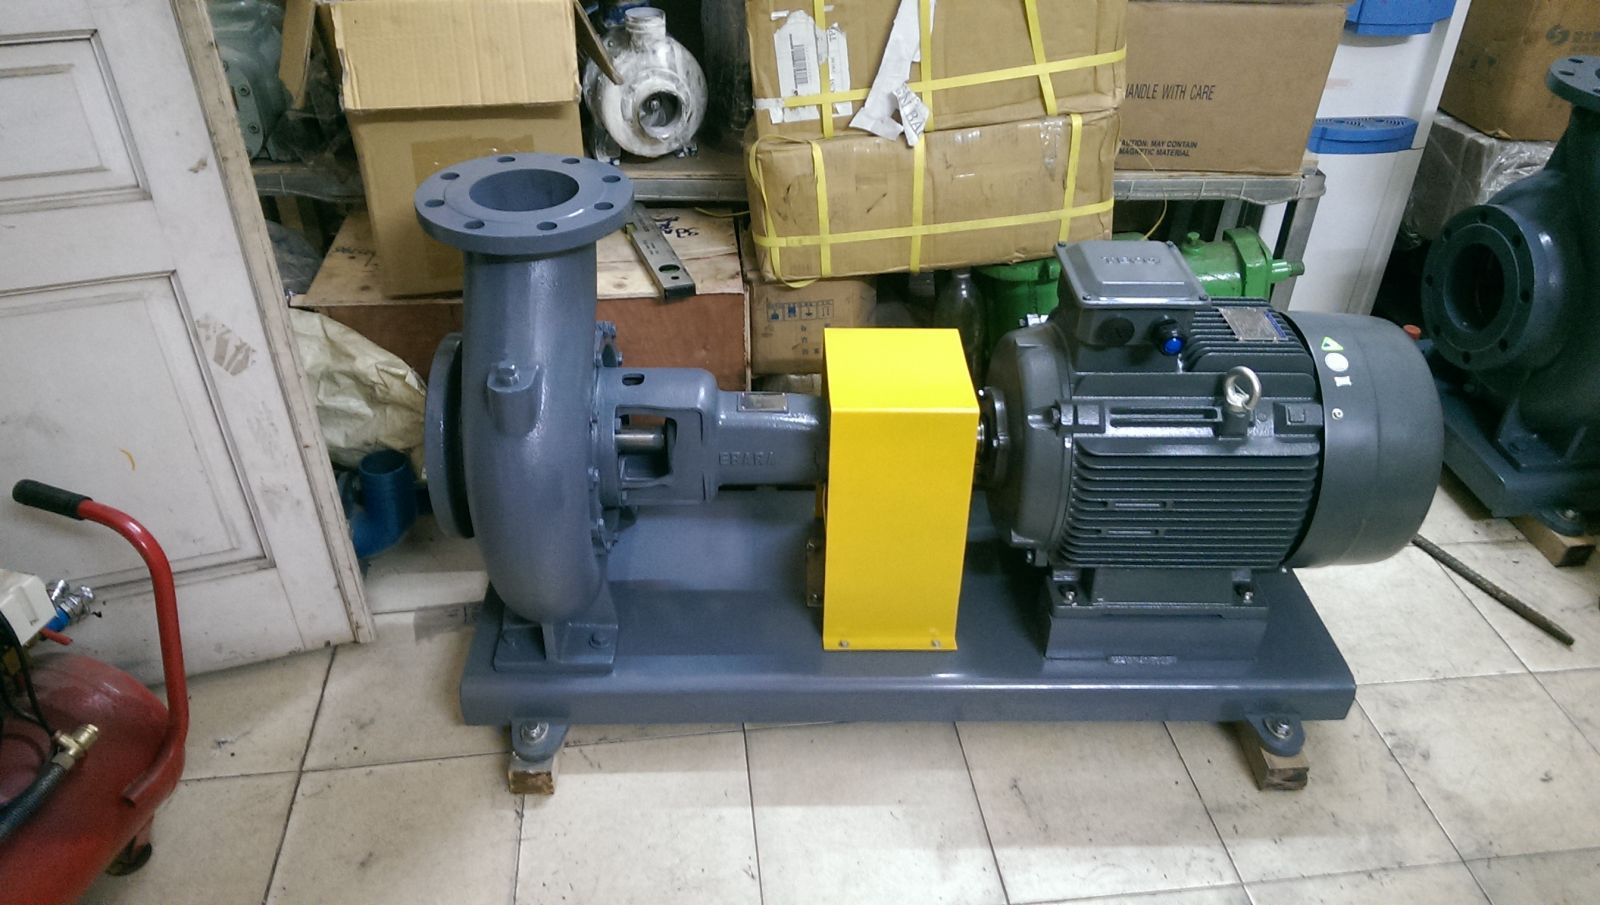 The Very Best Goulds Well Pumps To Meet Your Needs